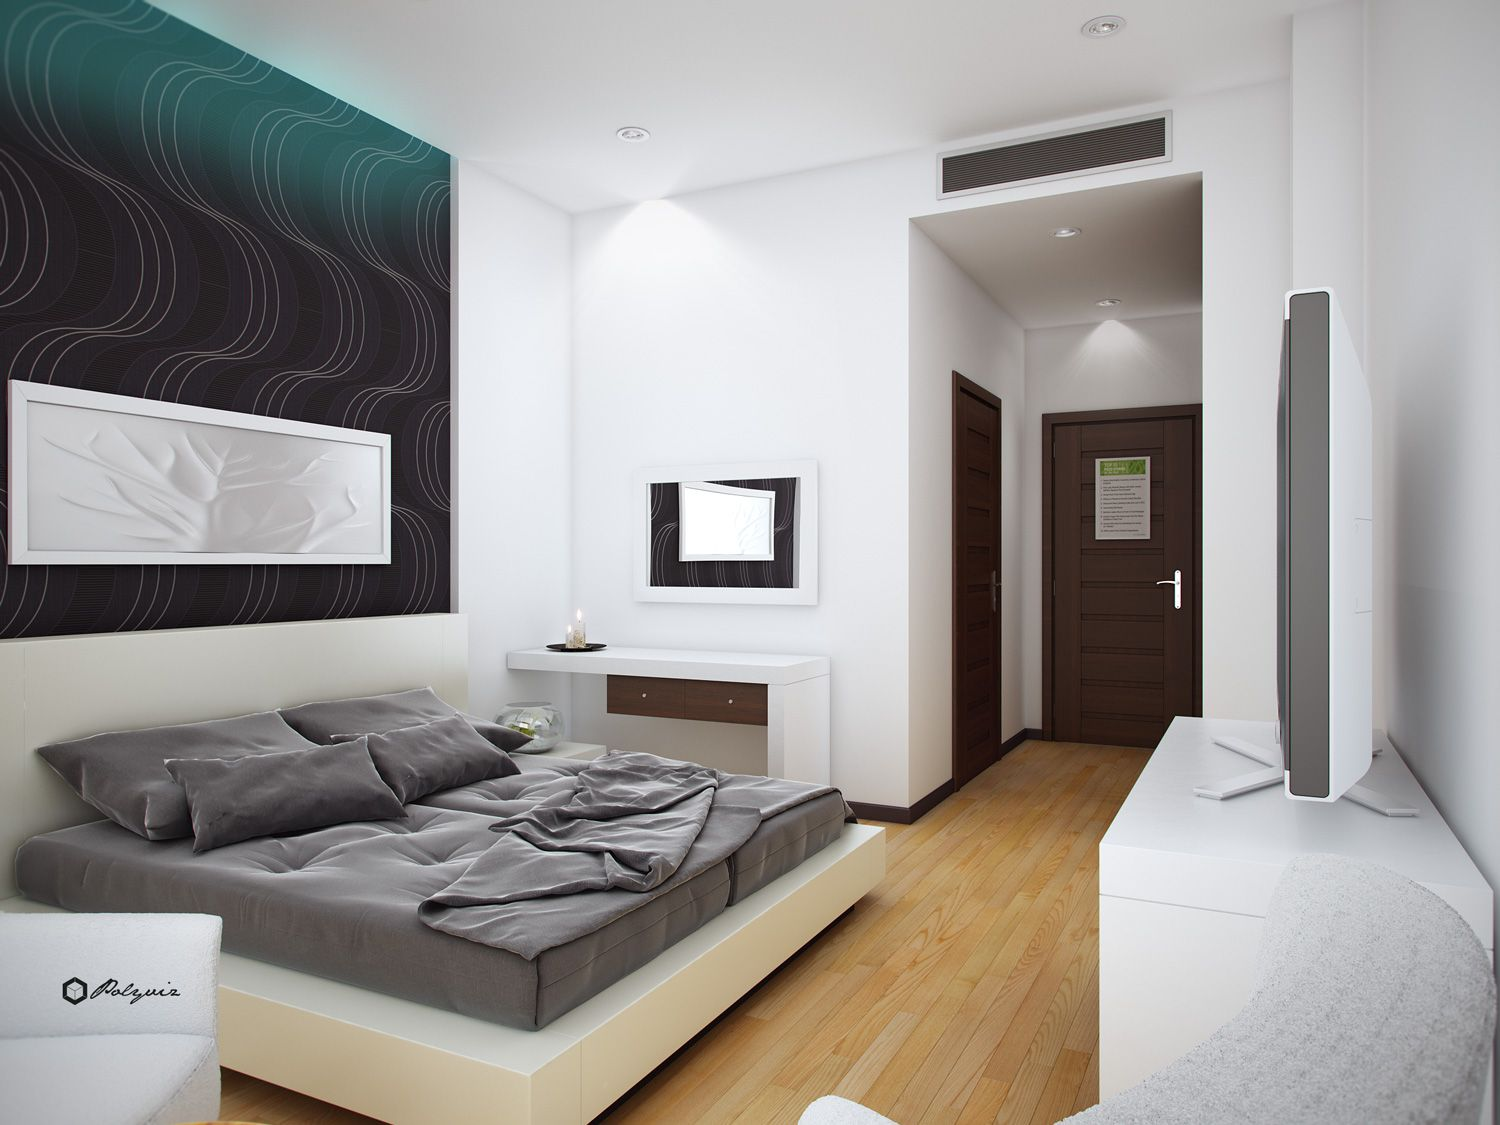 Modern hotel room design google search room design for Modern interior designs for bedrooms